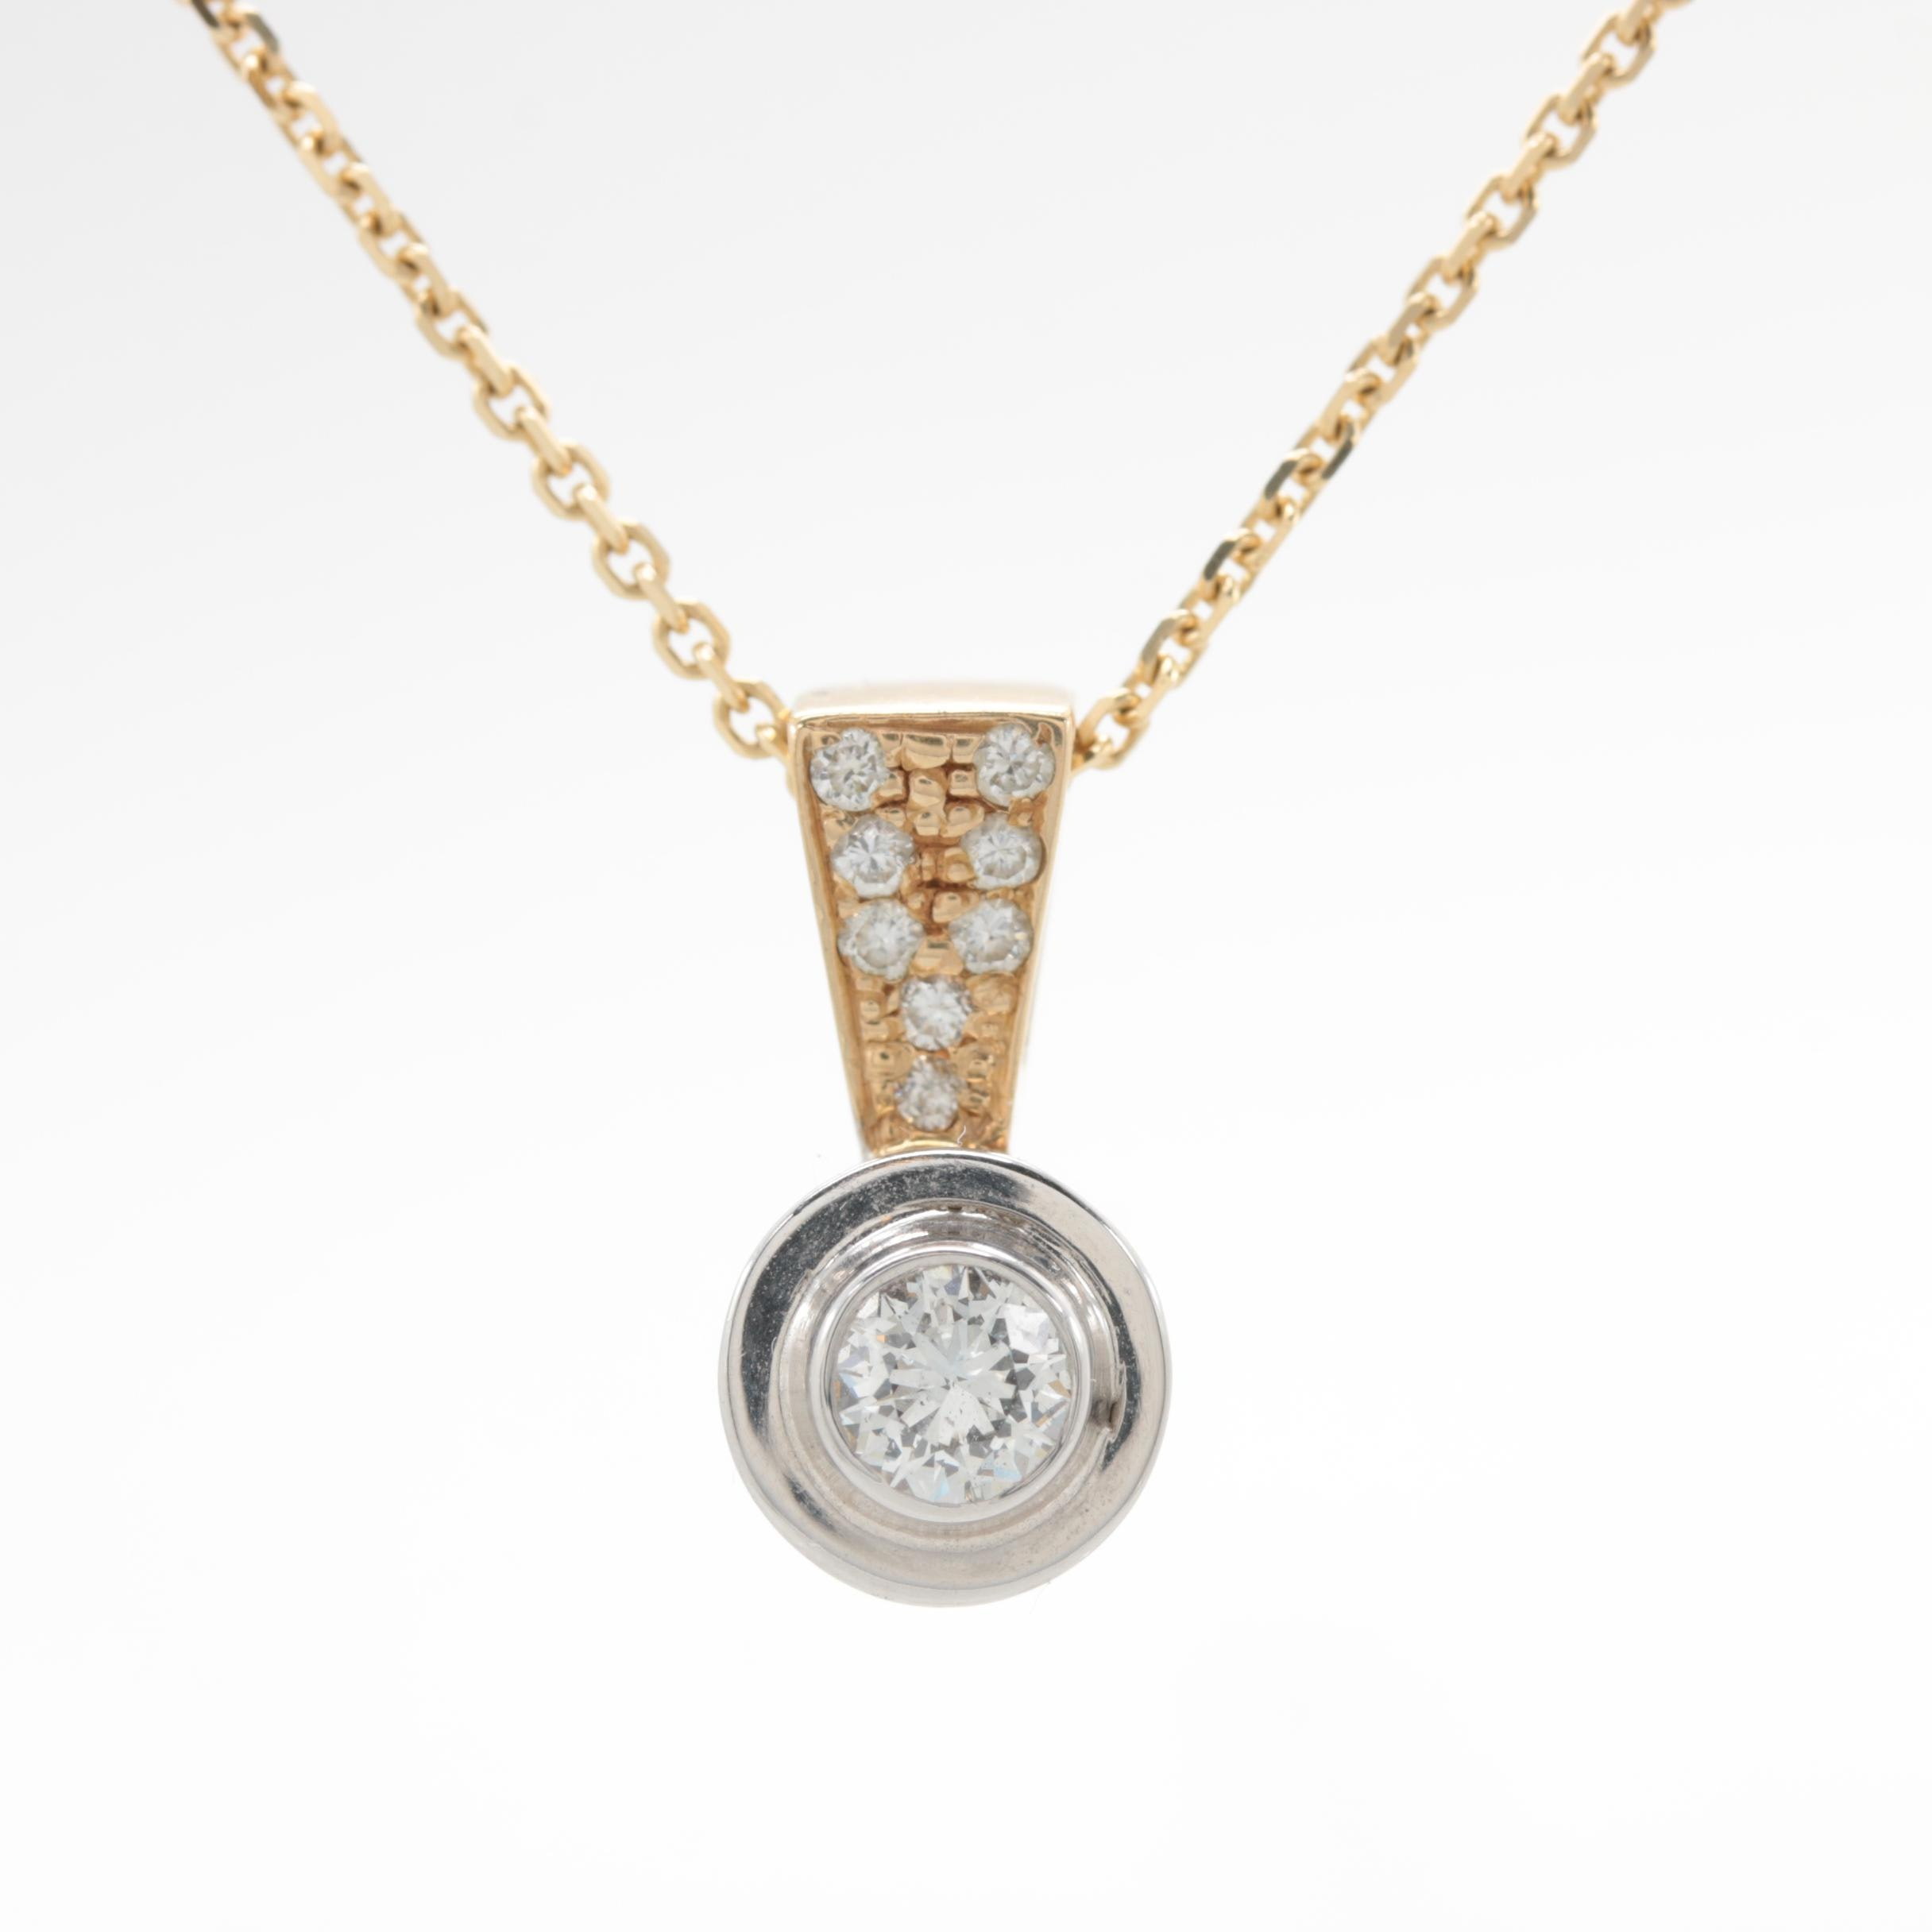 14K Yellow Gold Diamond Necklace with White Gold Accent